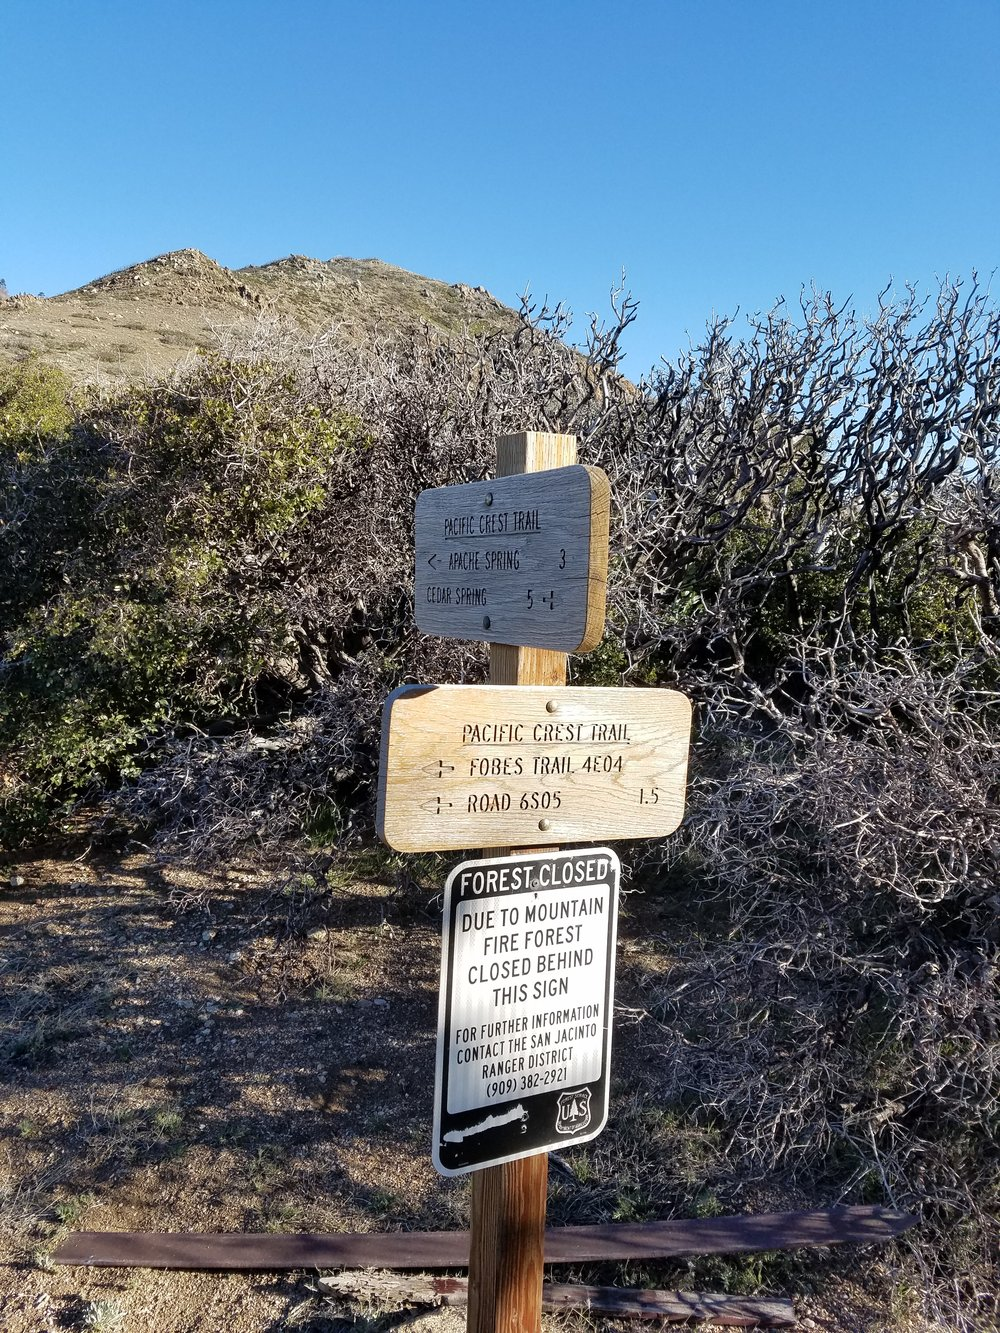 Forest closure at Fobes trail